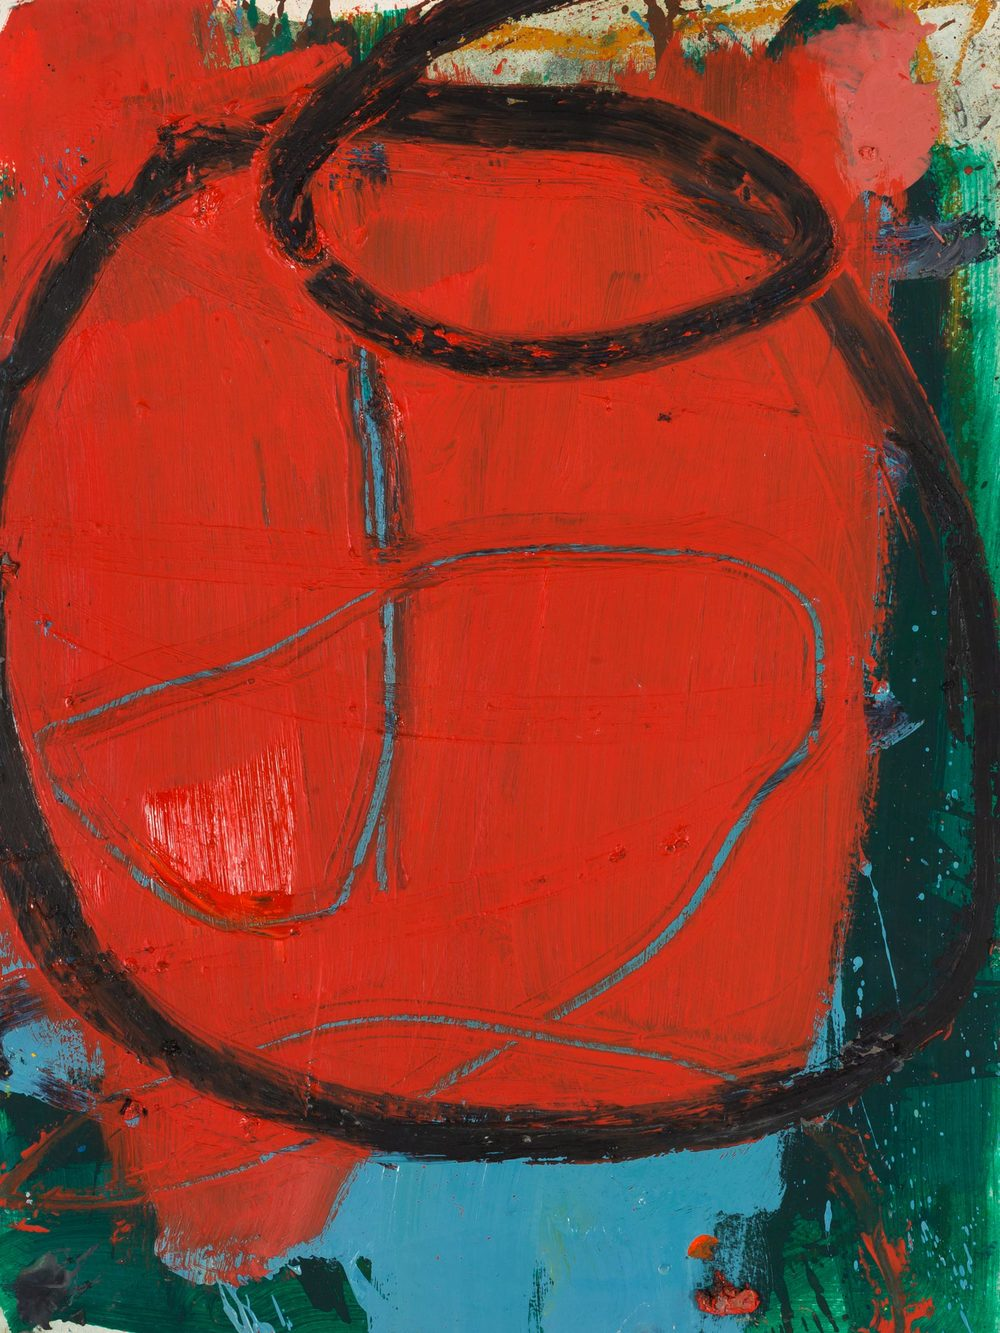 Tomato  , oil on paper, 24 x 18 in. ©Denise Gale 2013